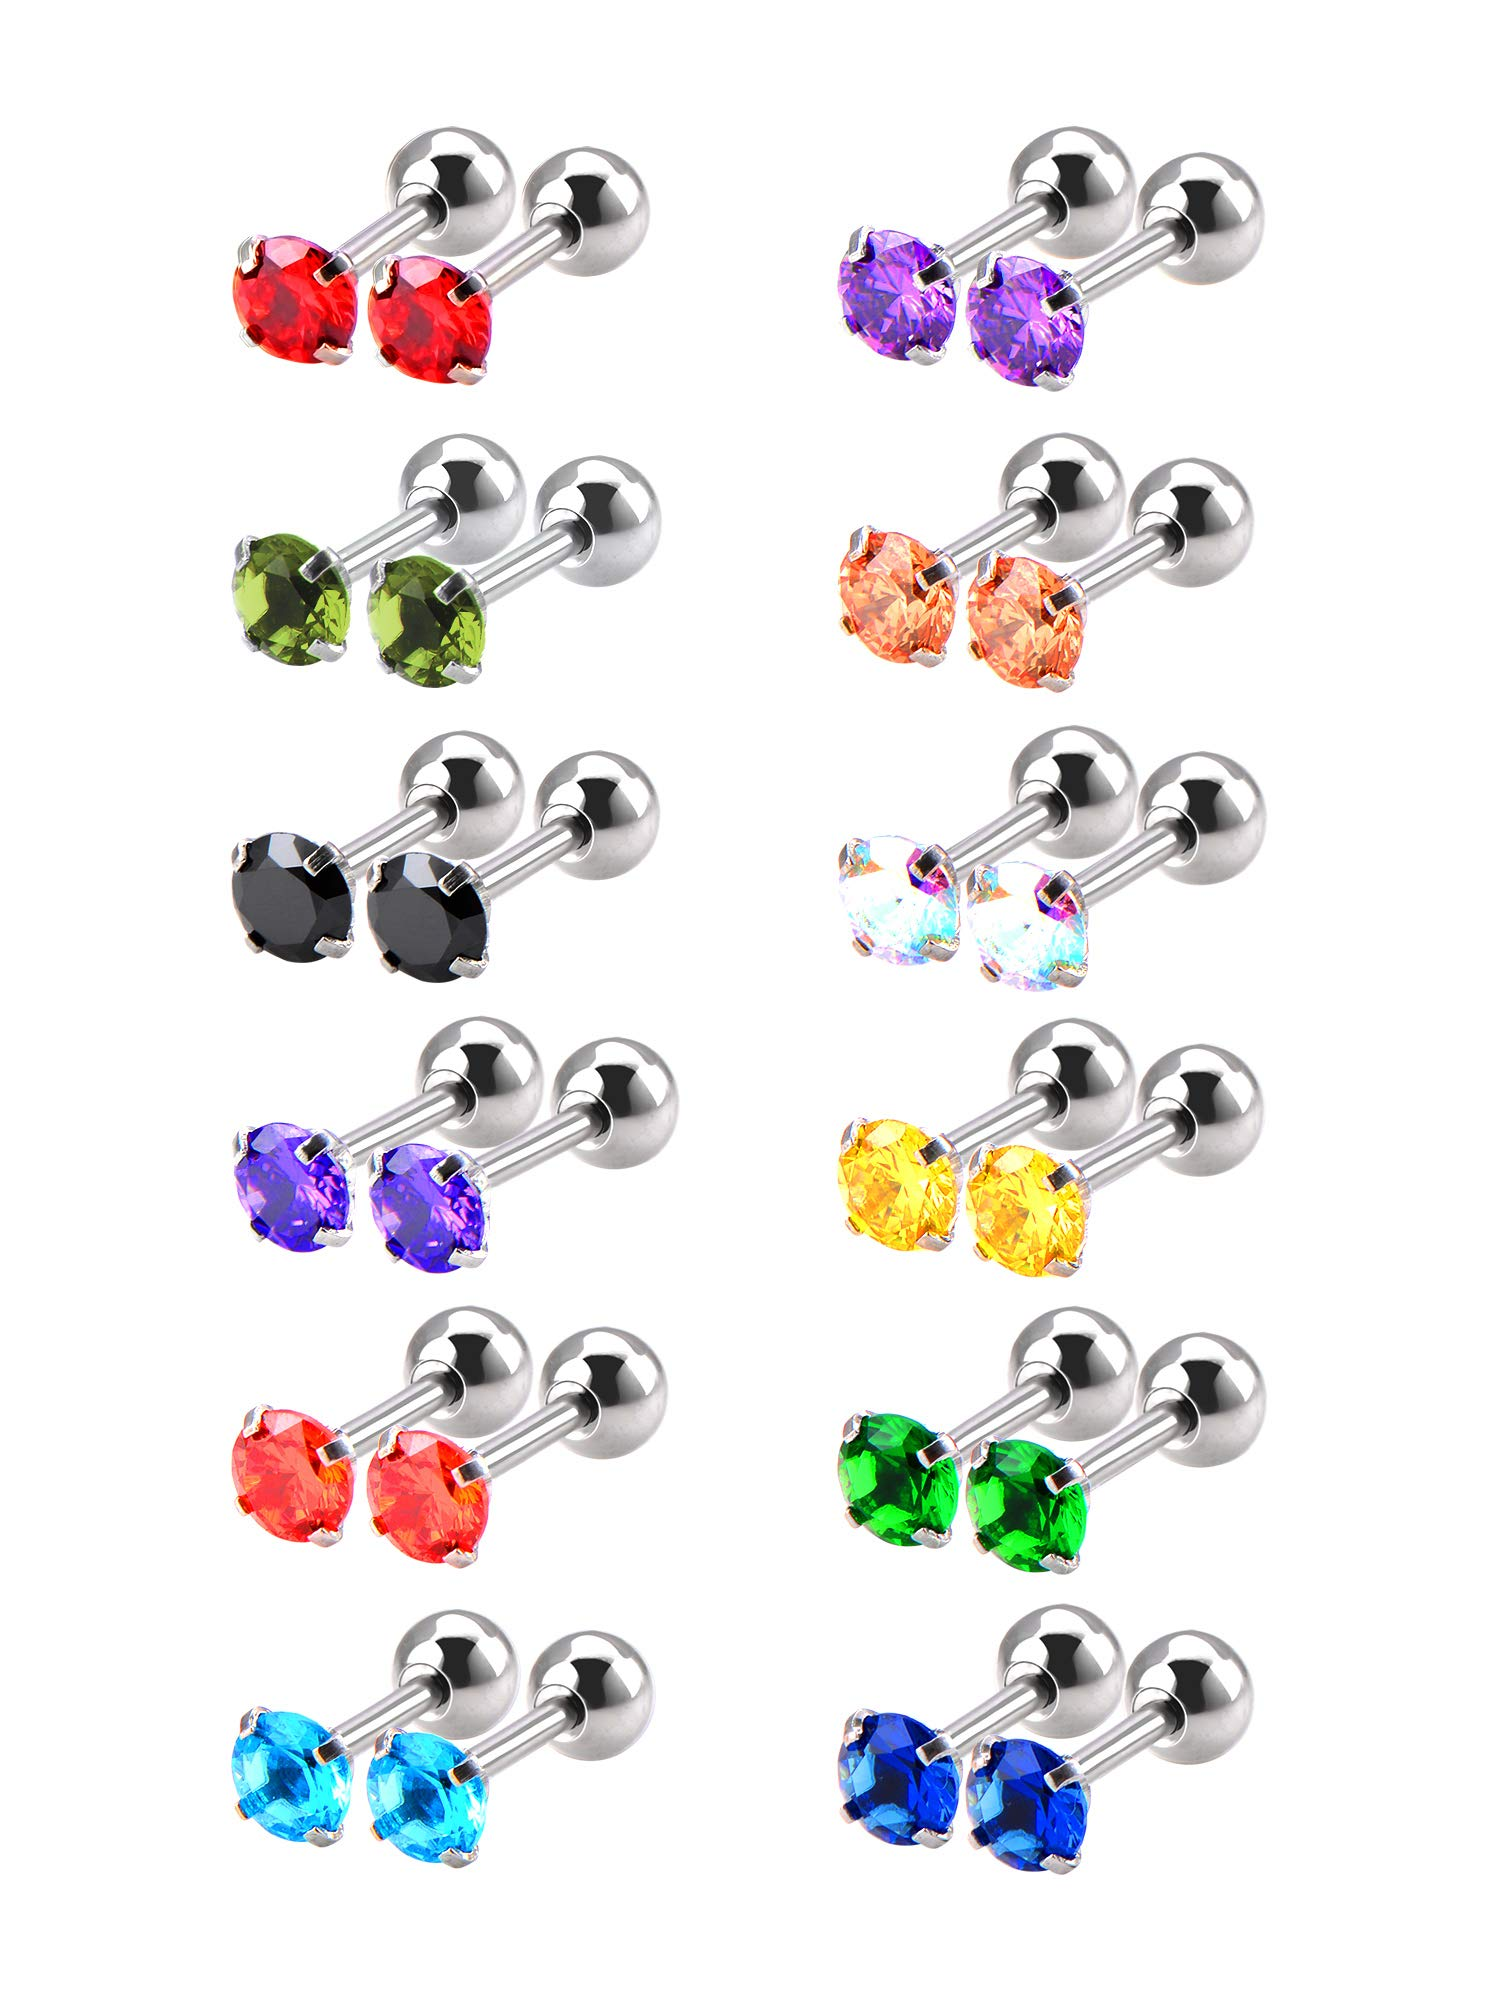 Mudder 12 Pairs 18 Gauge Stud Earrings Stainless Steel Barbell Studs Helix Earring Body Piercing Jewelry, 12 Colors (Cubic Zirconia) by Mudder